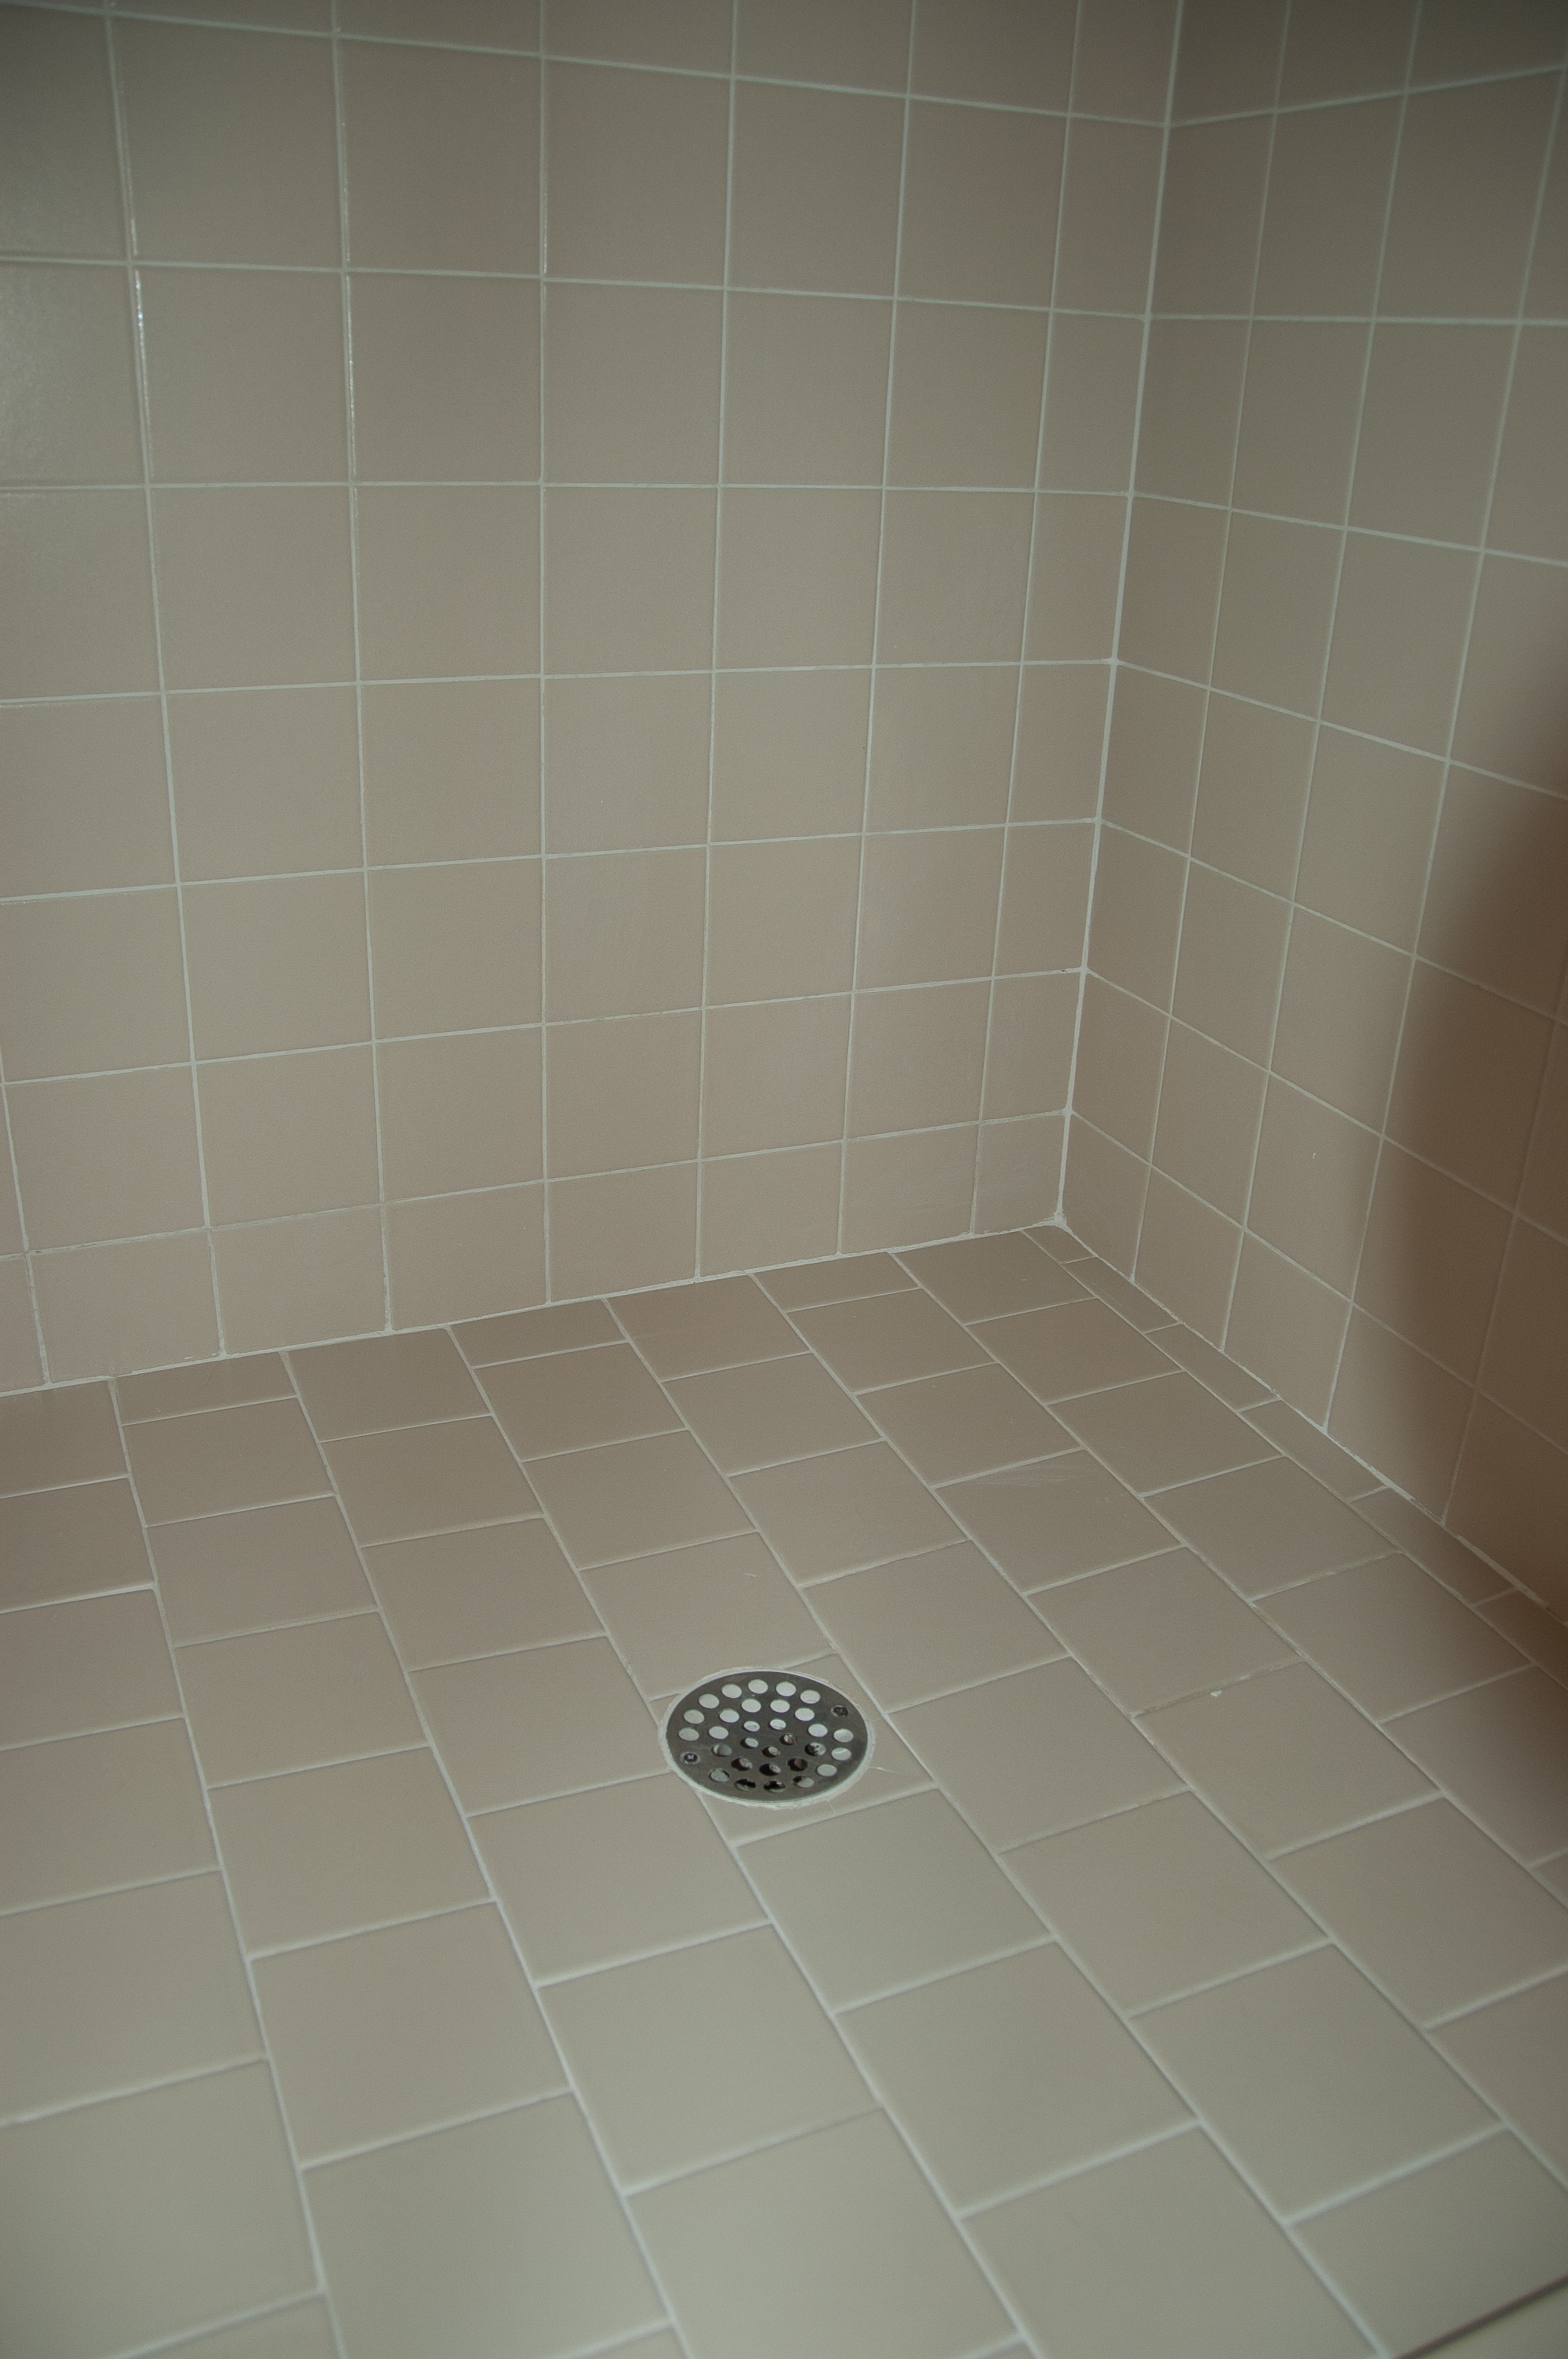 Shower stall re-grout and re-caulk project - The DIY Girl